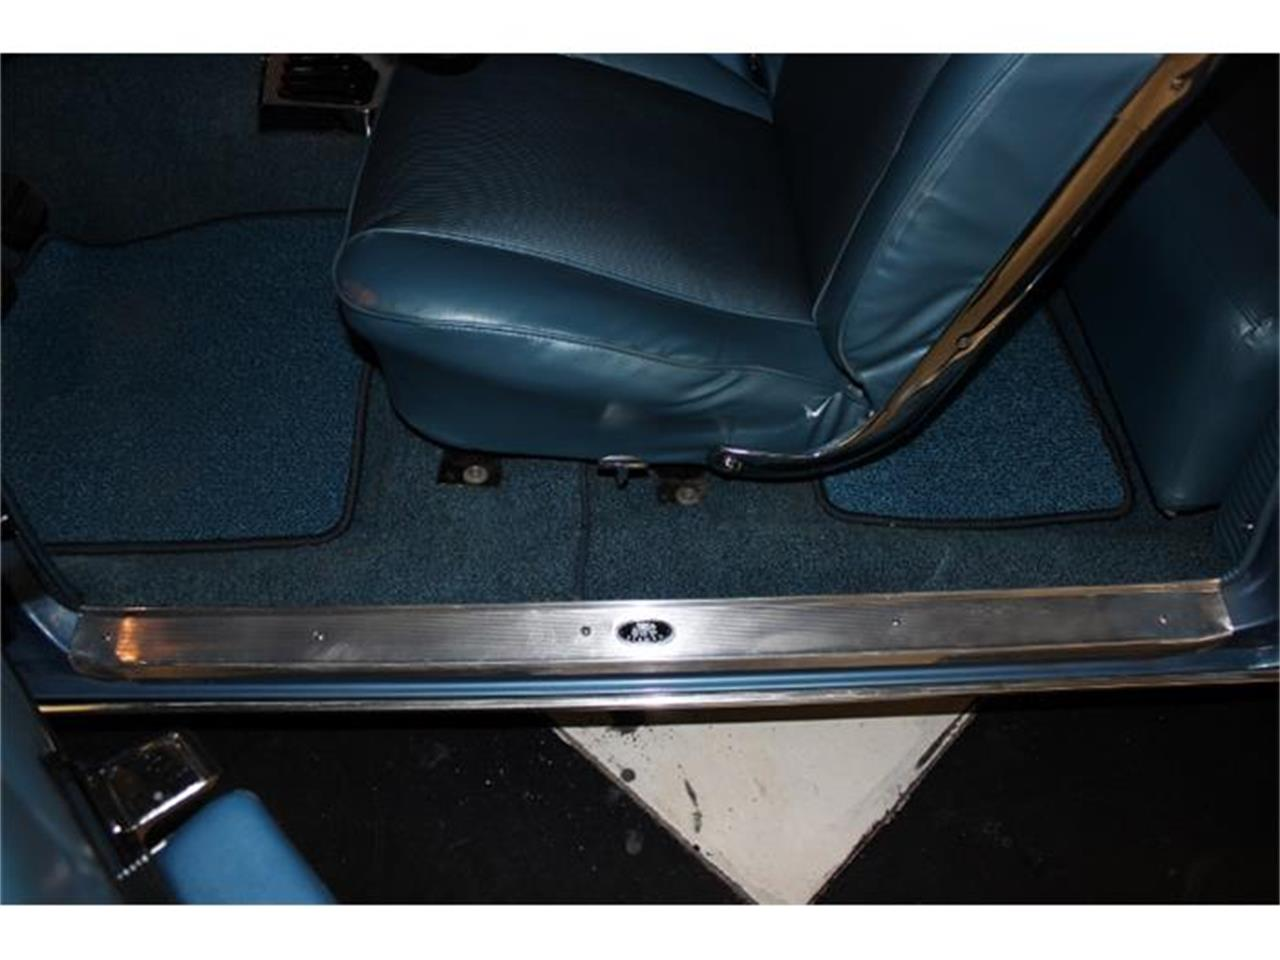 Large Picture of 1962 Chevrolet Impala SS located in Lillington North Carolina - $55,000.00 - IT0G